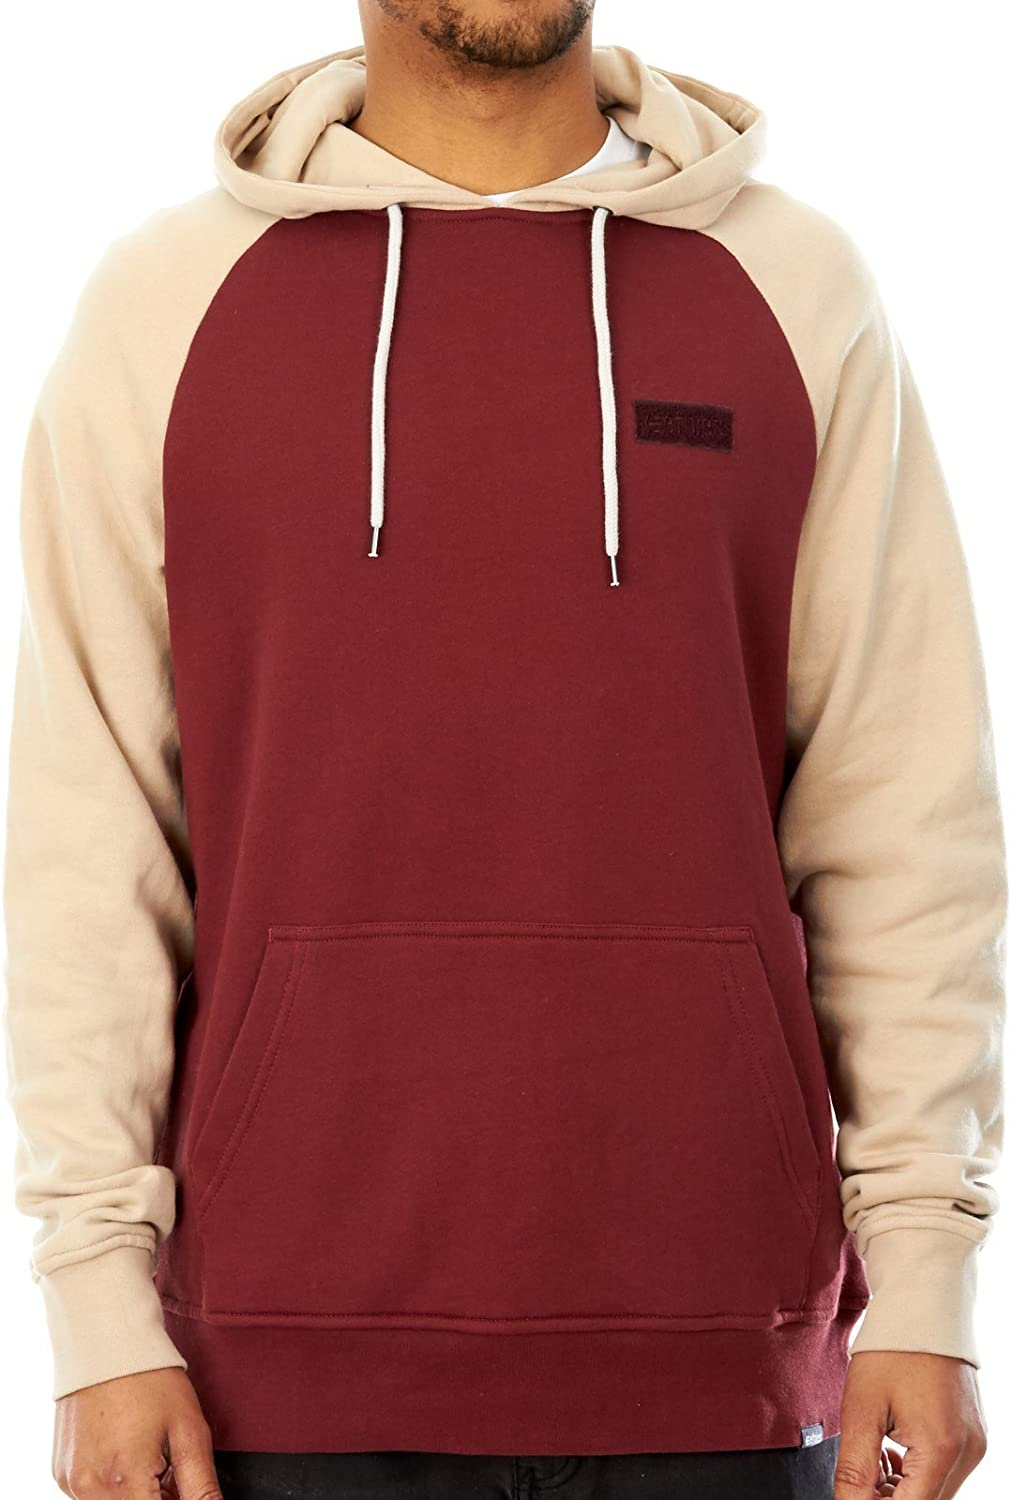 1886cadfc4a64 Etnies Burgundy Corp Box Hoody nnvxyp3349-New Clothing - www ...